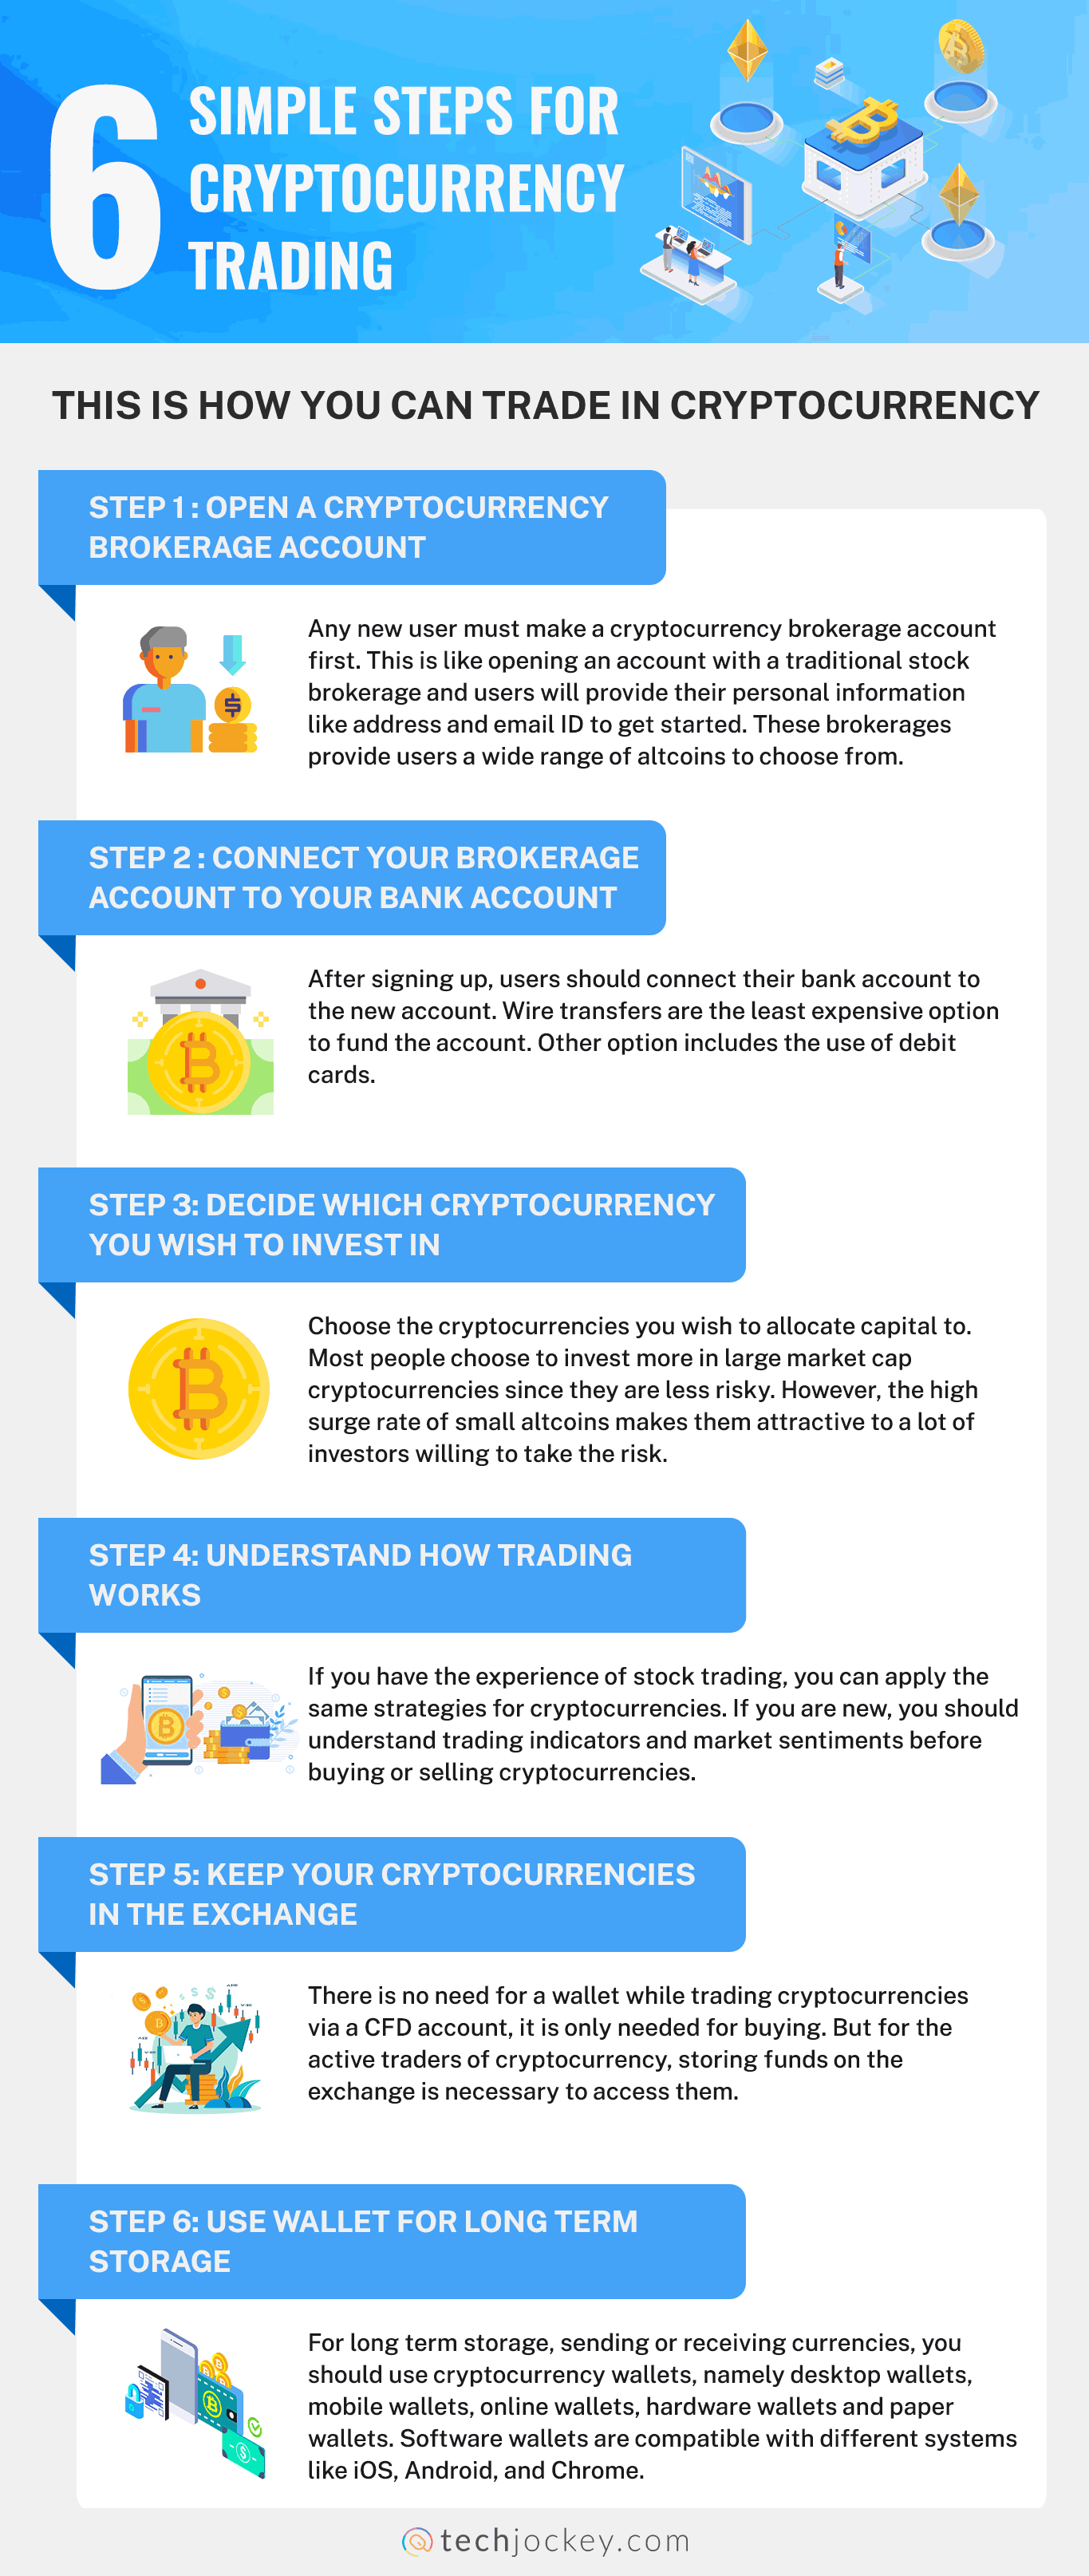 6 Simple Steps for Cryptocurrency Trading